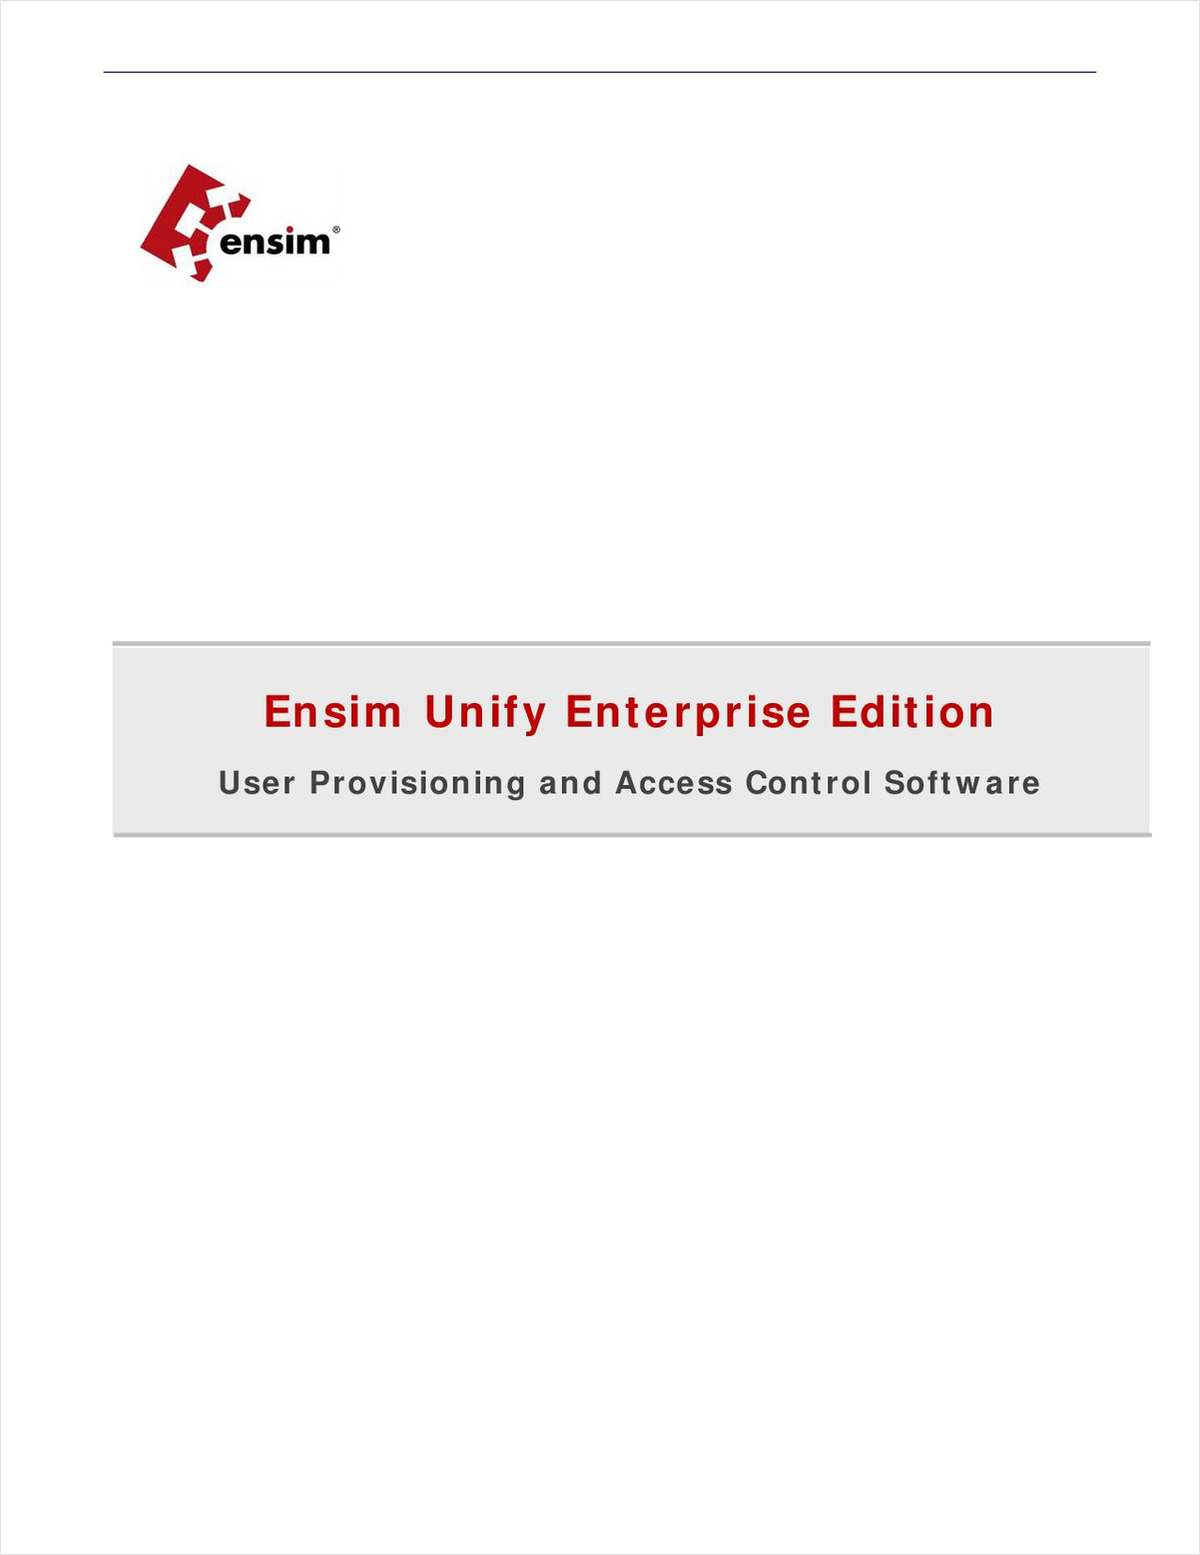 Ensim Unify Enterprise Edition: User Provisioning and Access Control Software